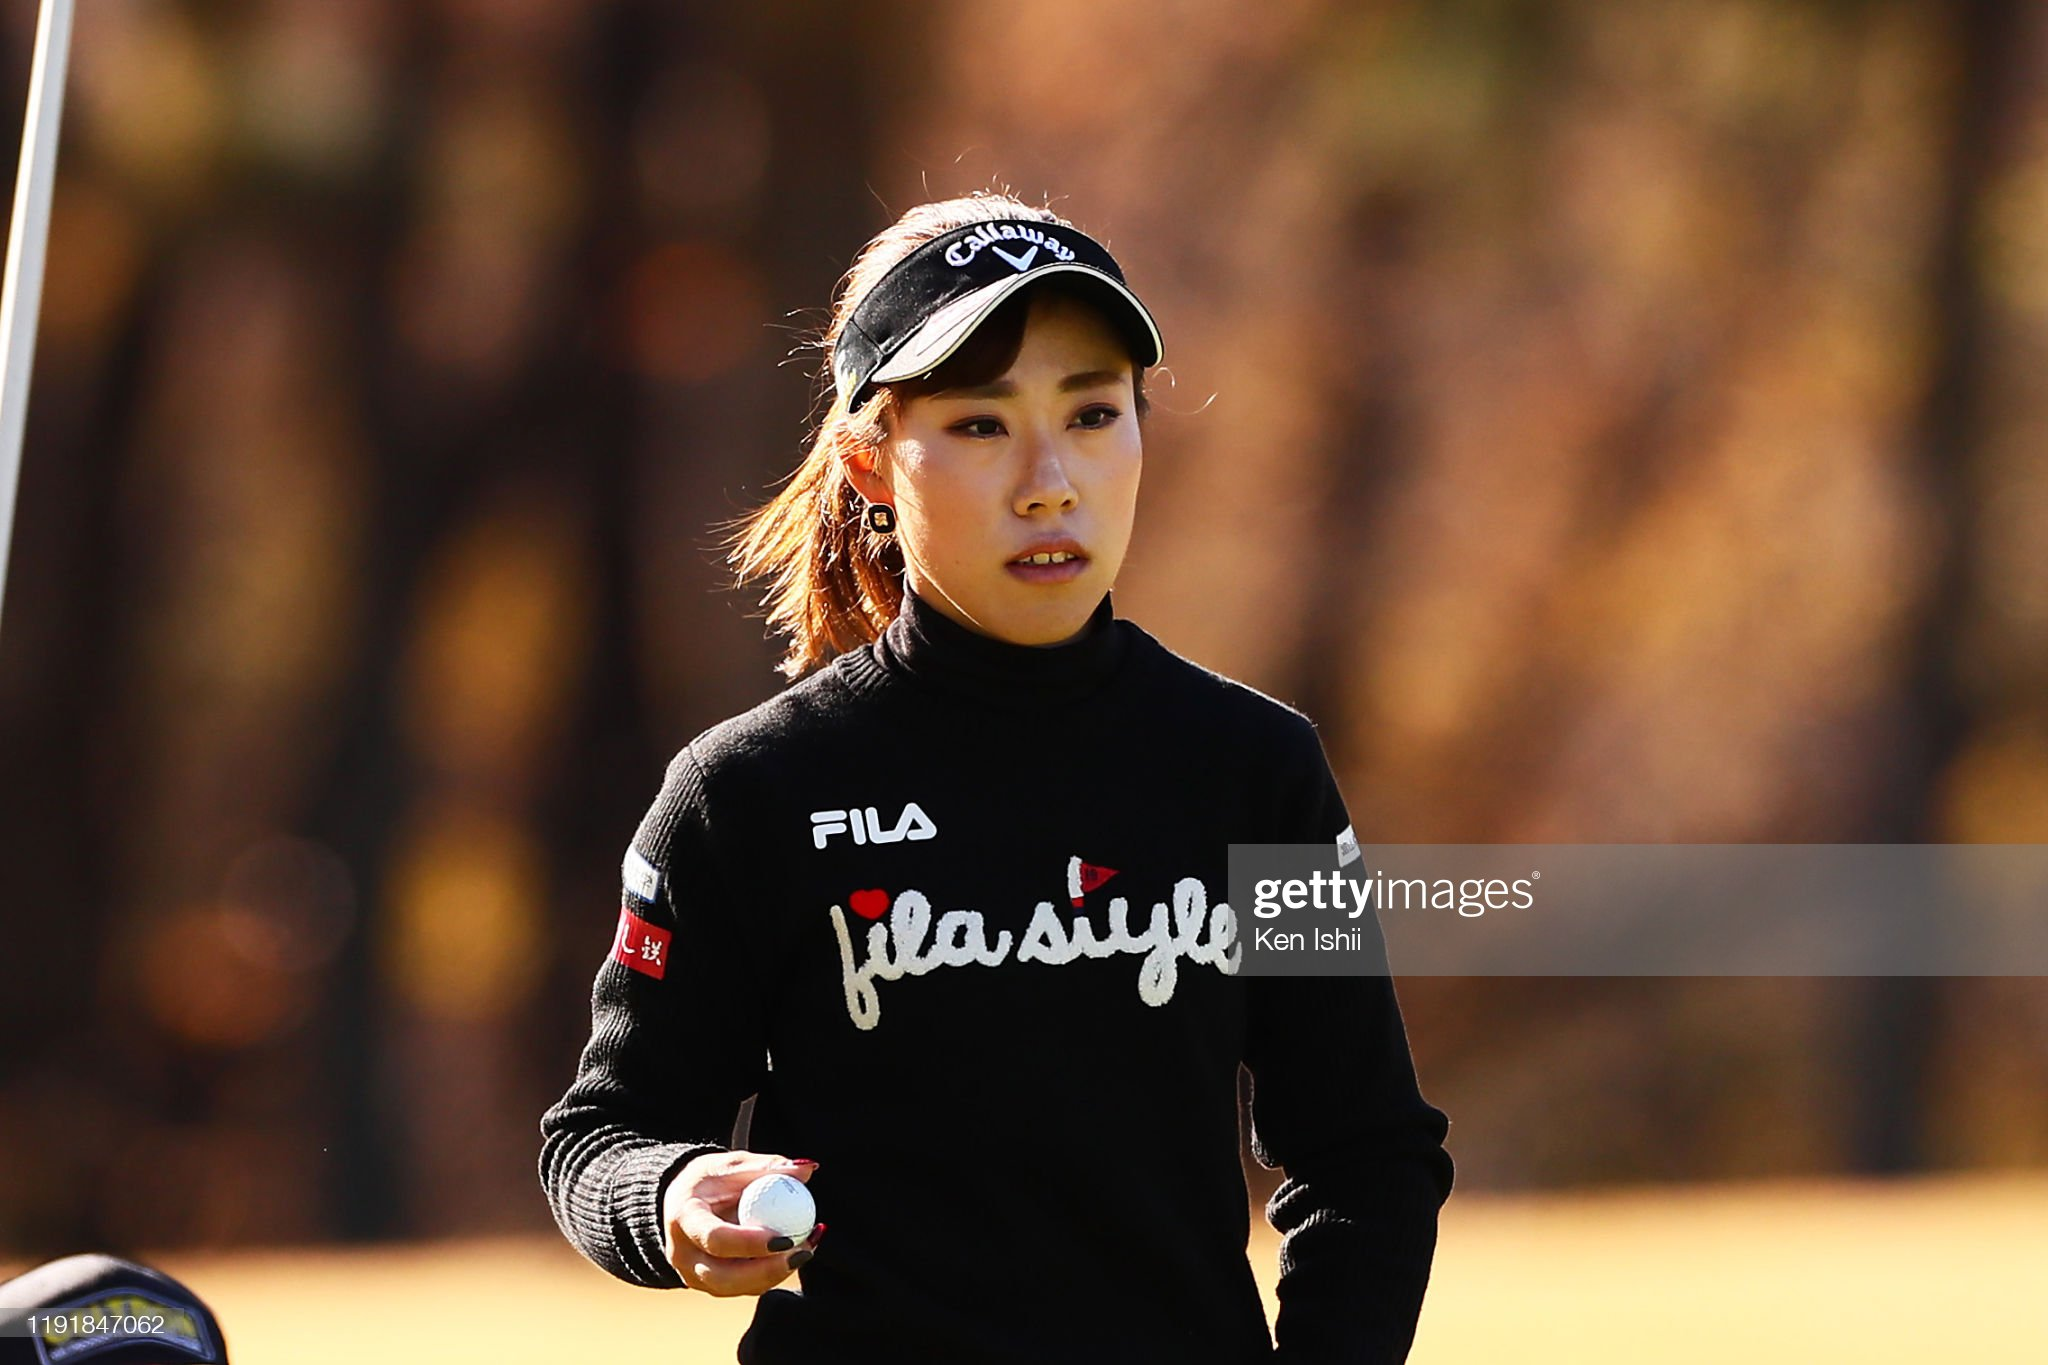 https://media.gettyimages.com/photos/ayako-kimura-of-japan-prepares-to-putt-on-the-first-green-during-the-picture-id1191847062?s=2048x2048